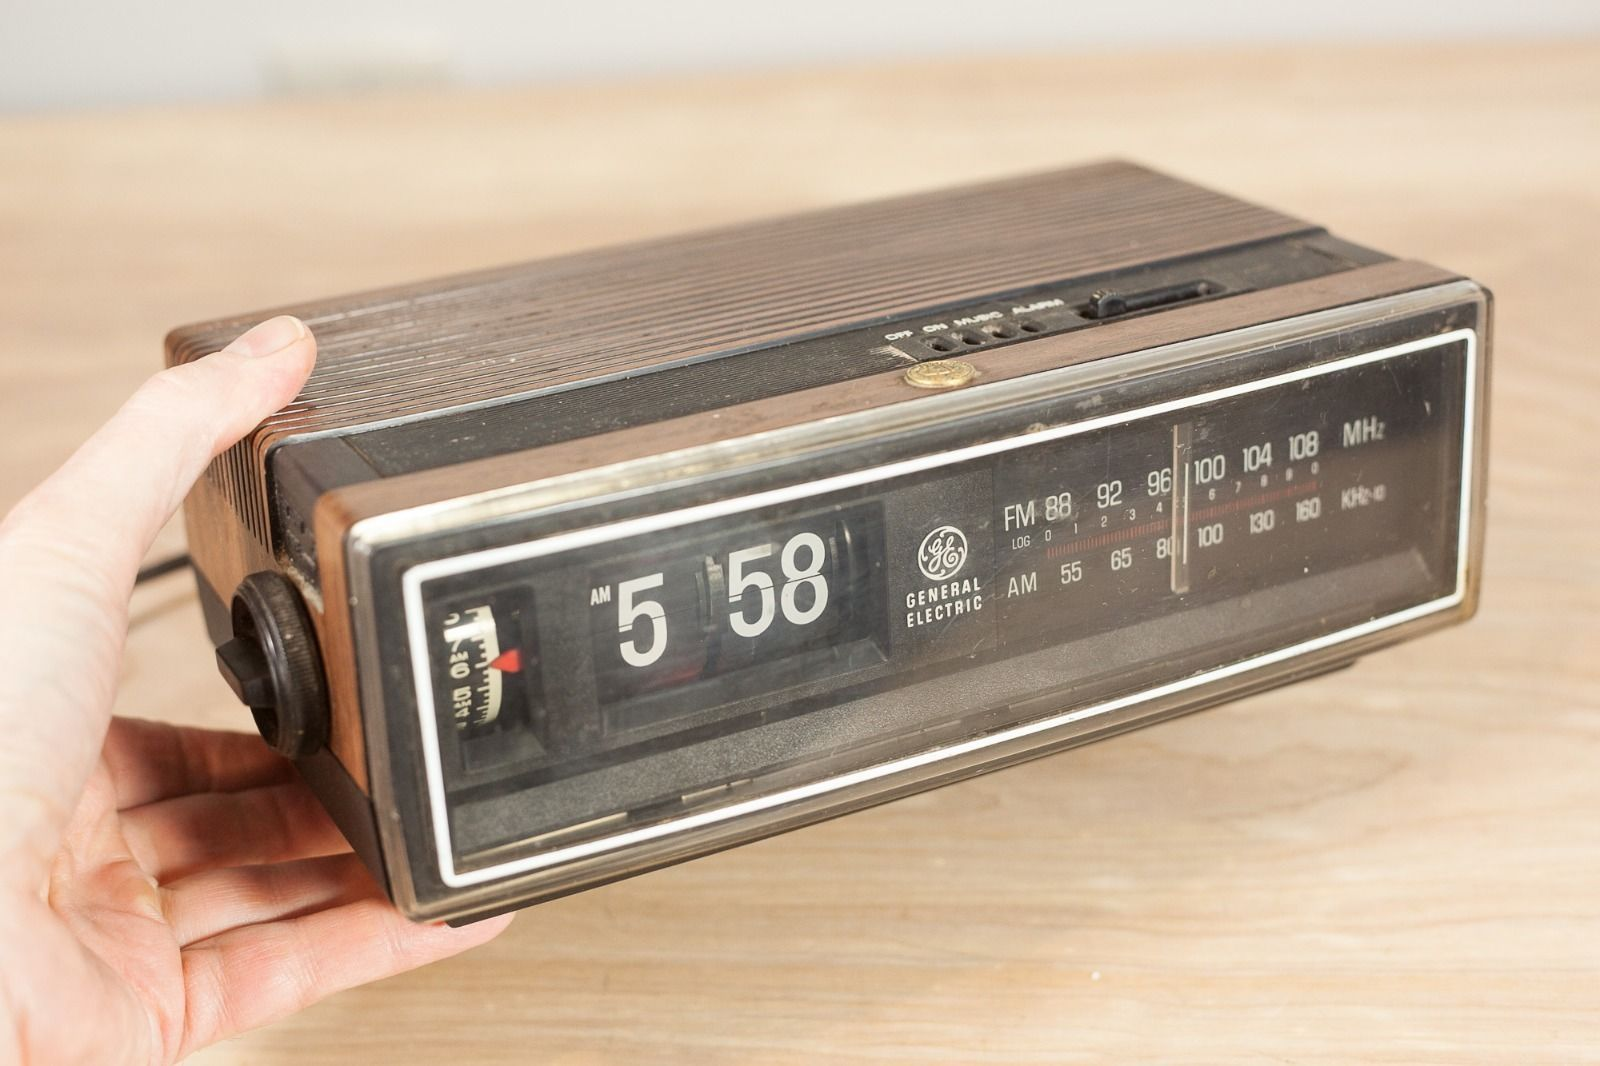 vintage general electric flip number radio alarm clock vintage radios. Black Bedroom Furniture Sets. Home Design Ideas